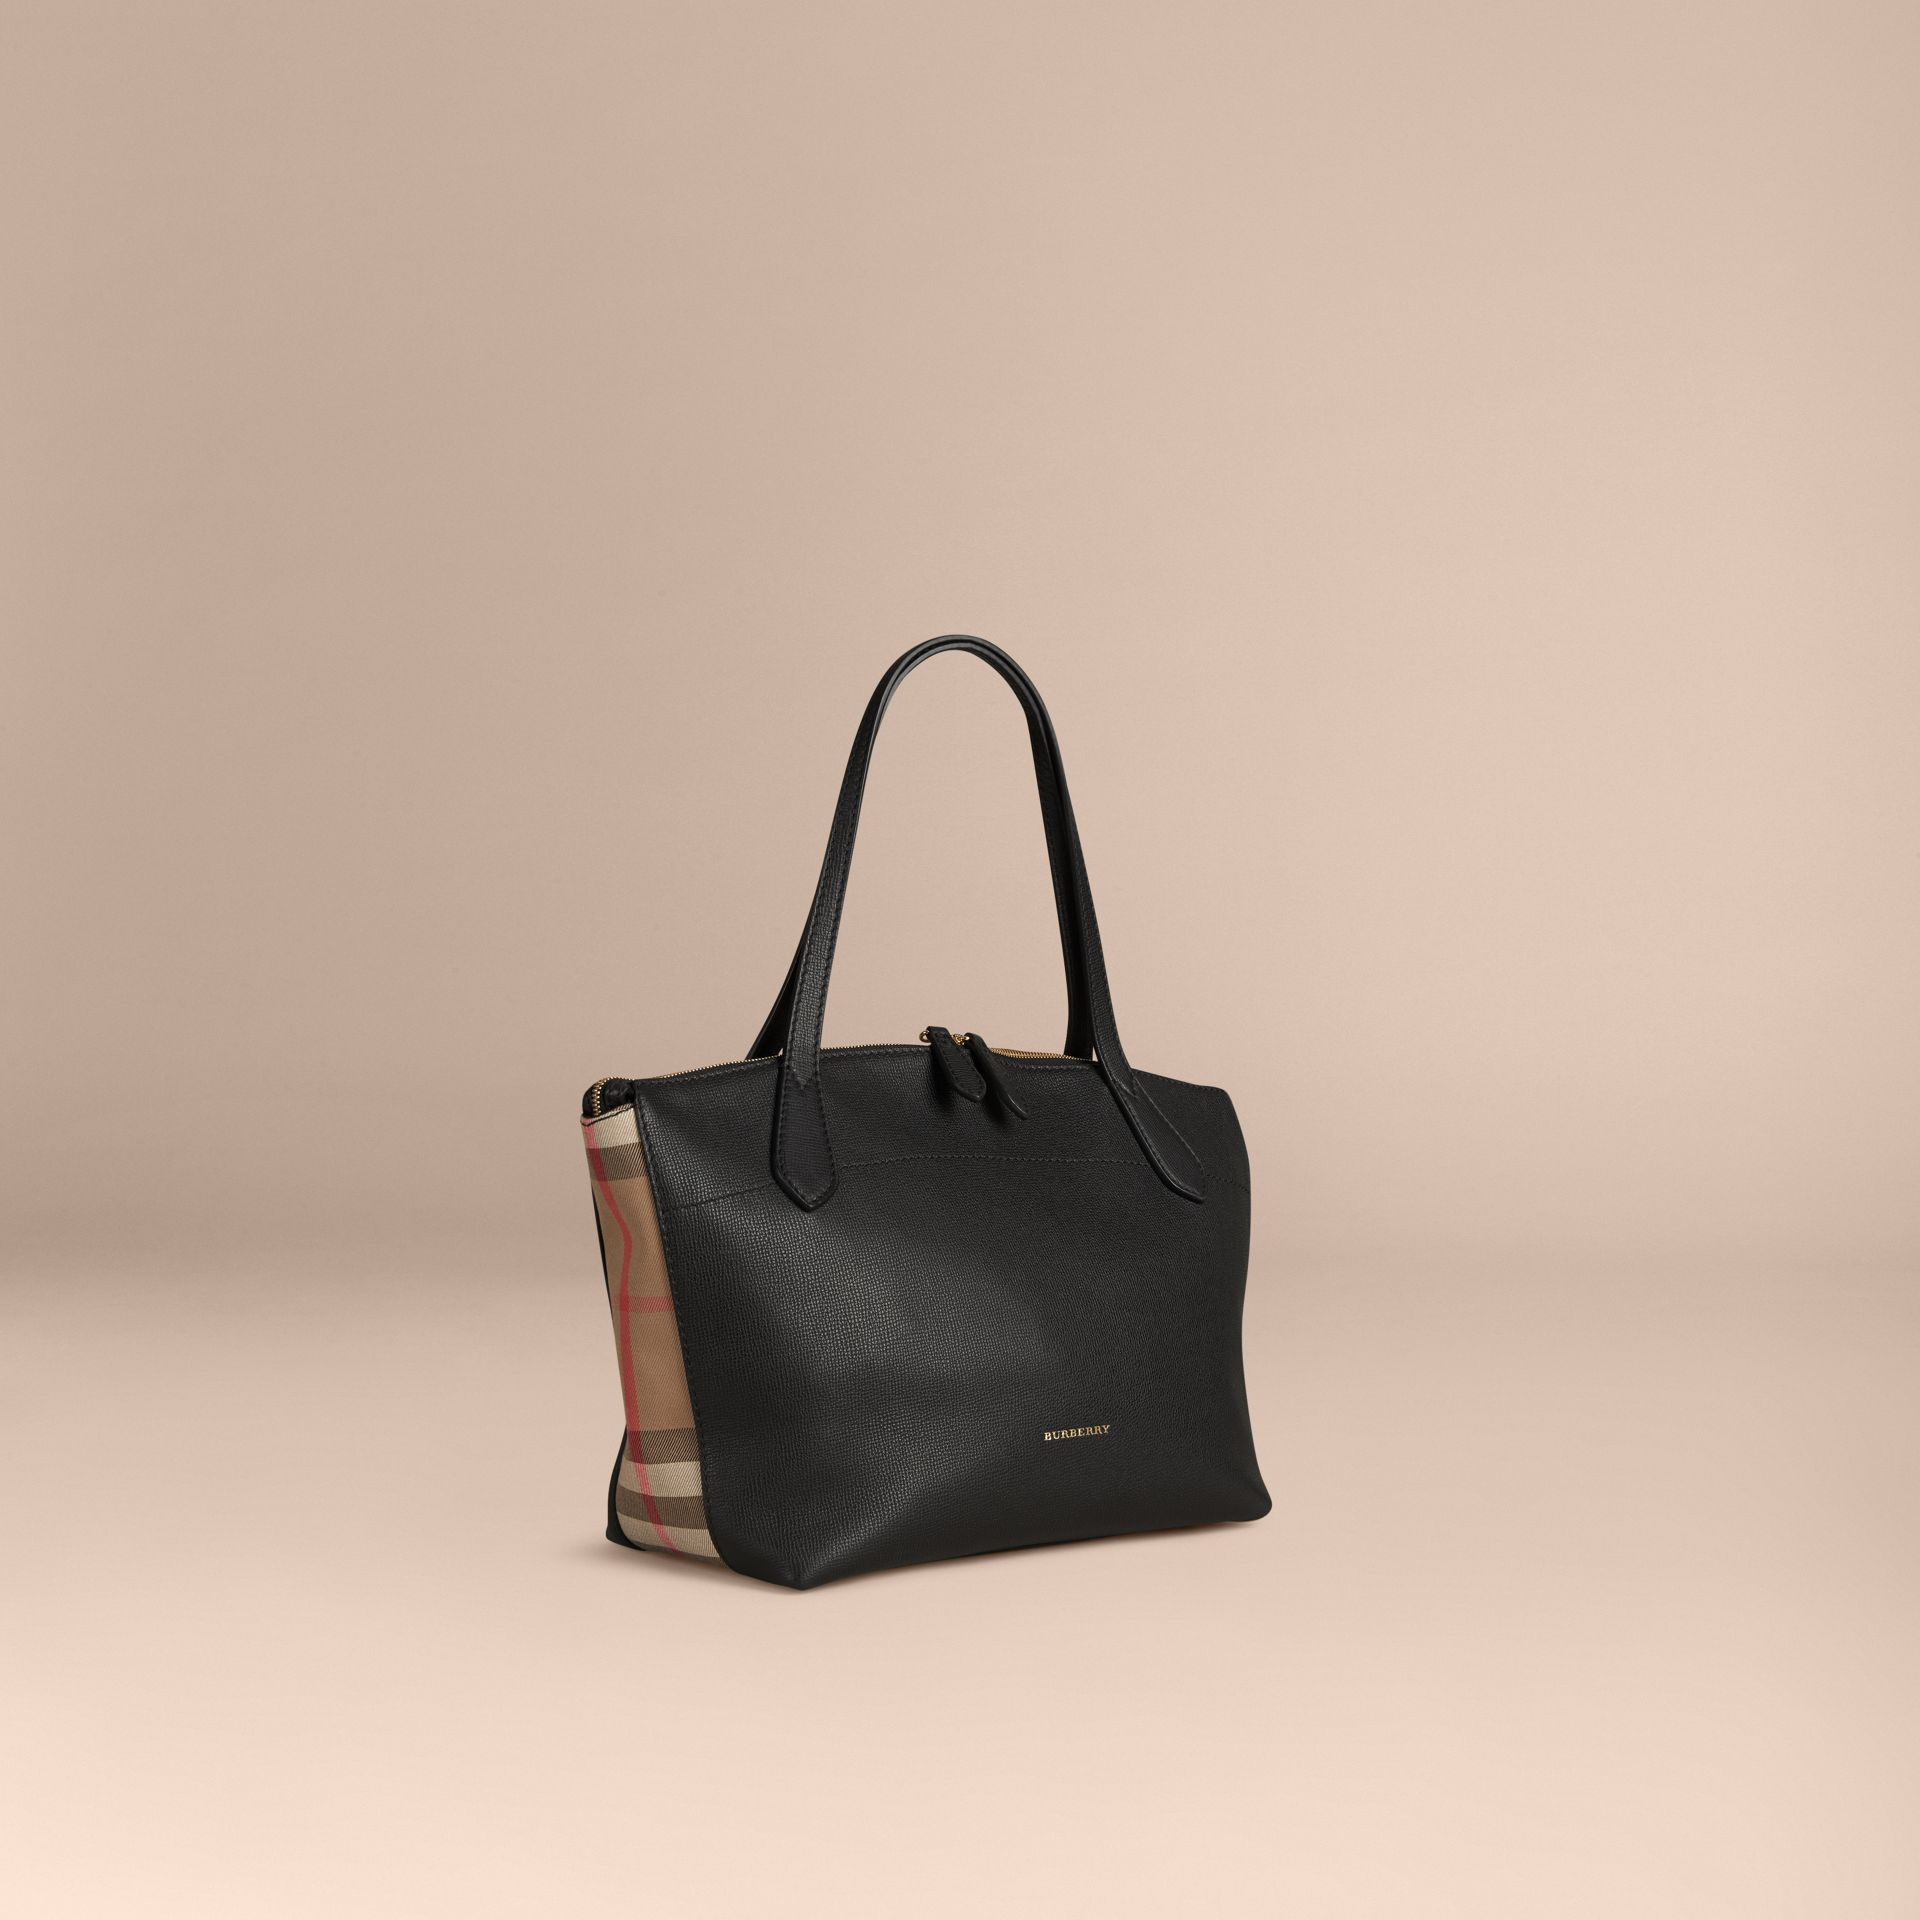 Medium Leather and House Check Tote Bag in Black - Women | Burberry - gallery image 1